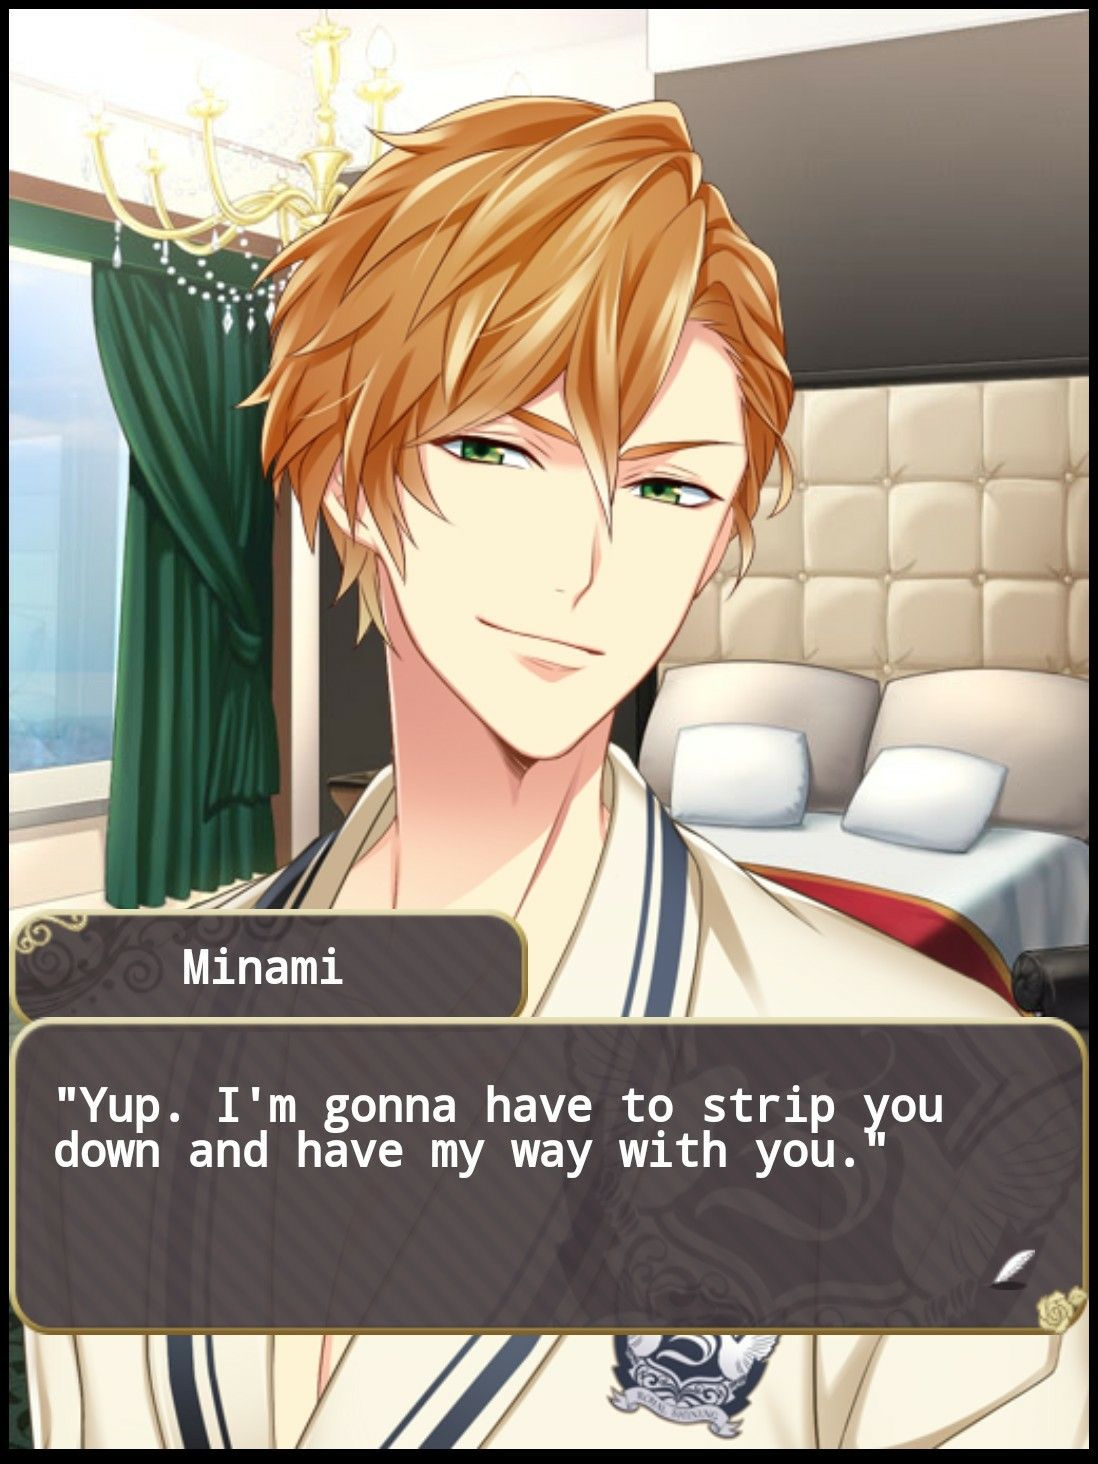 Pin on Several shades of sadism otome